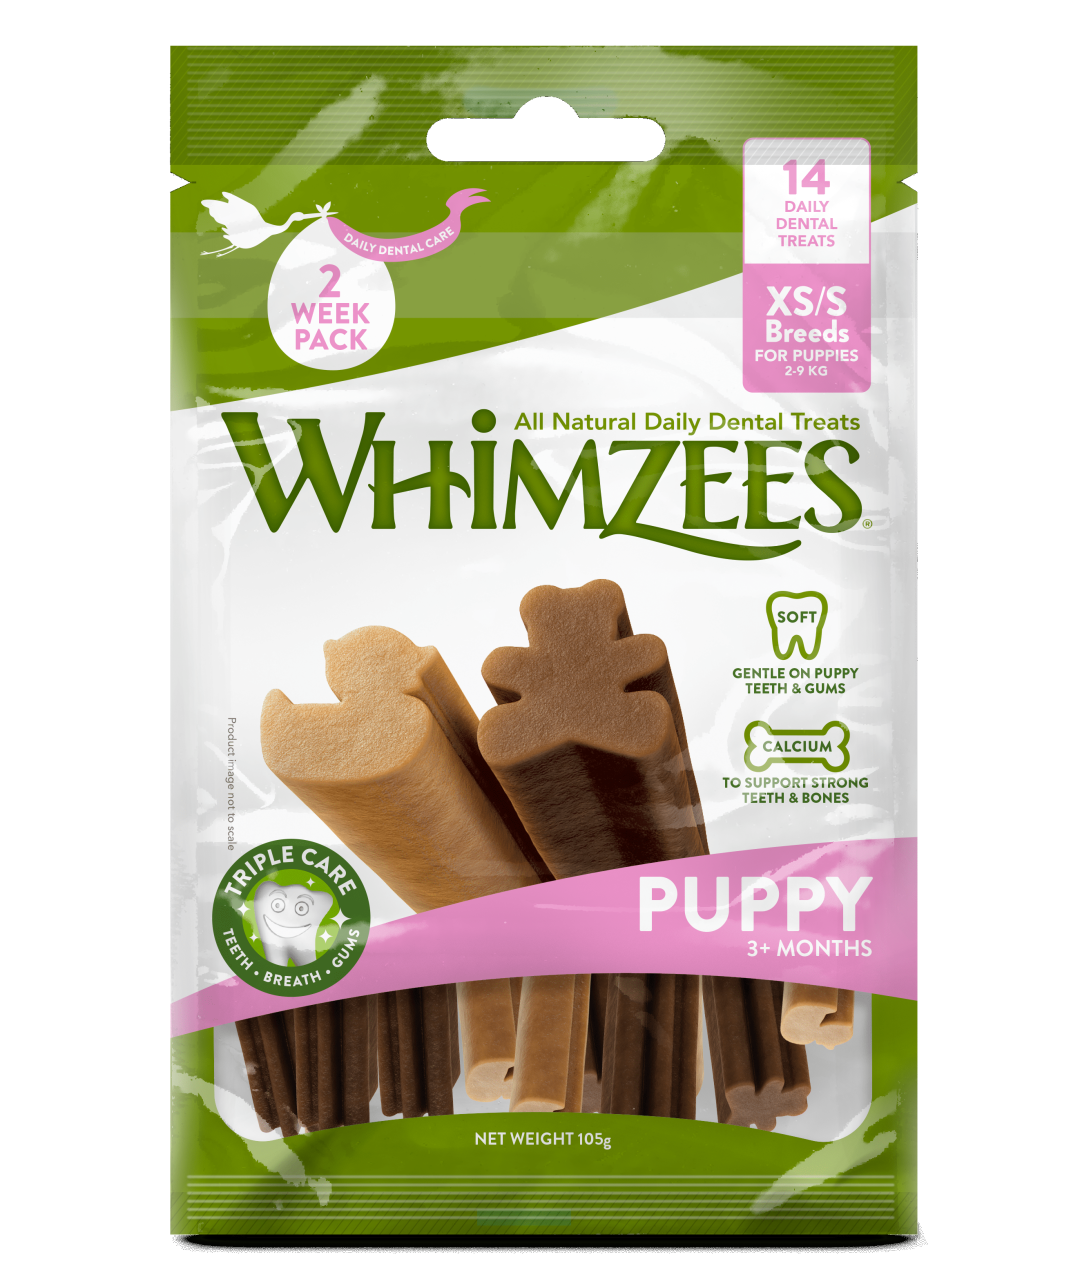 WHIMZEES Puppy XS/S 14 st